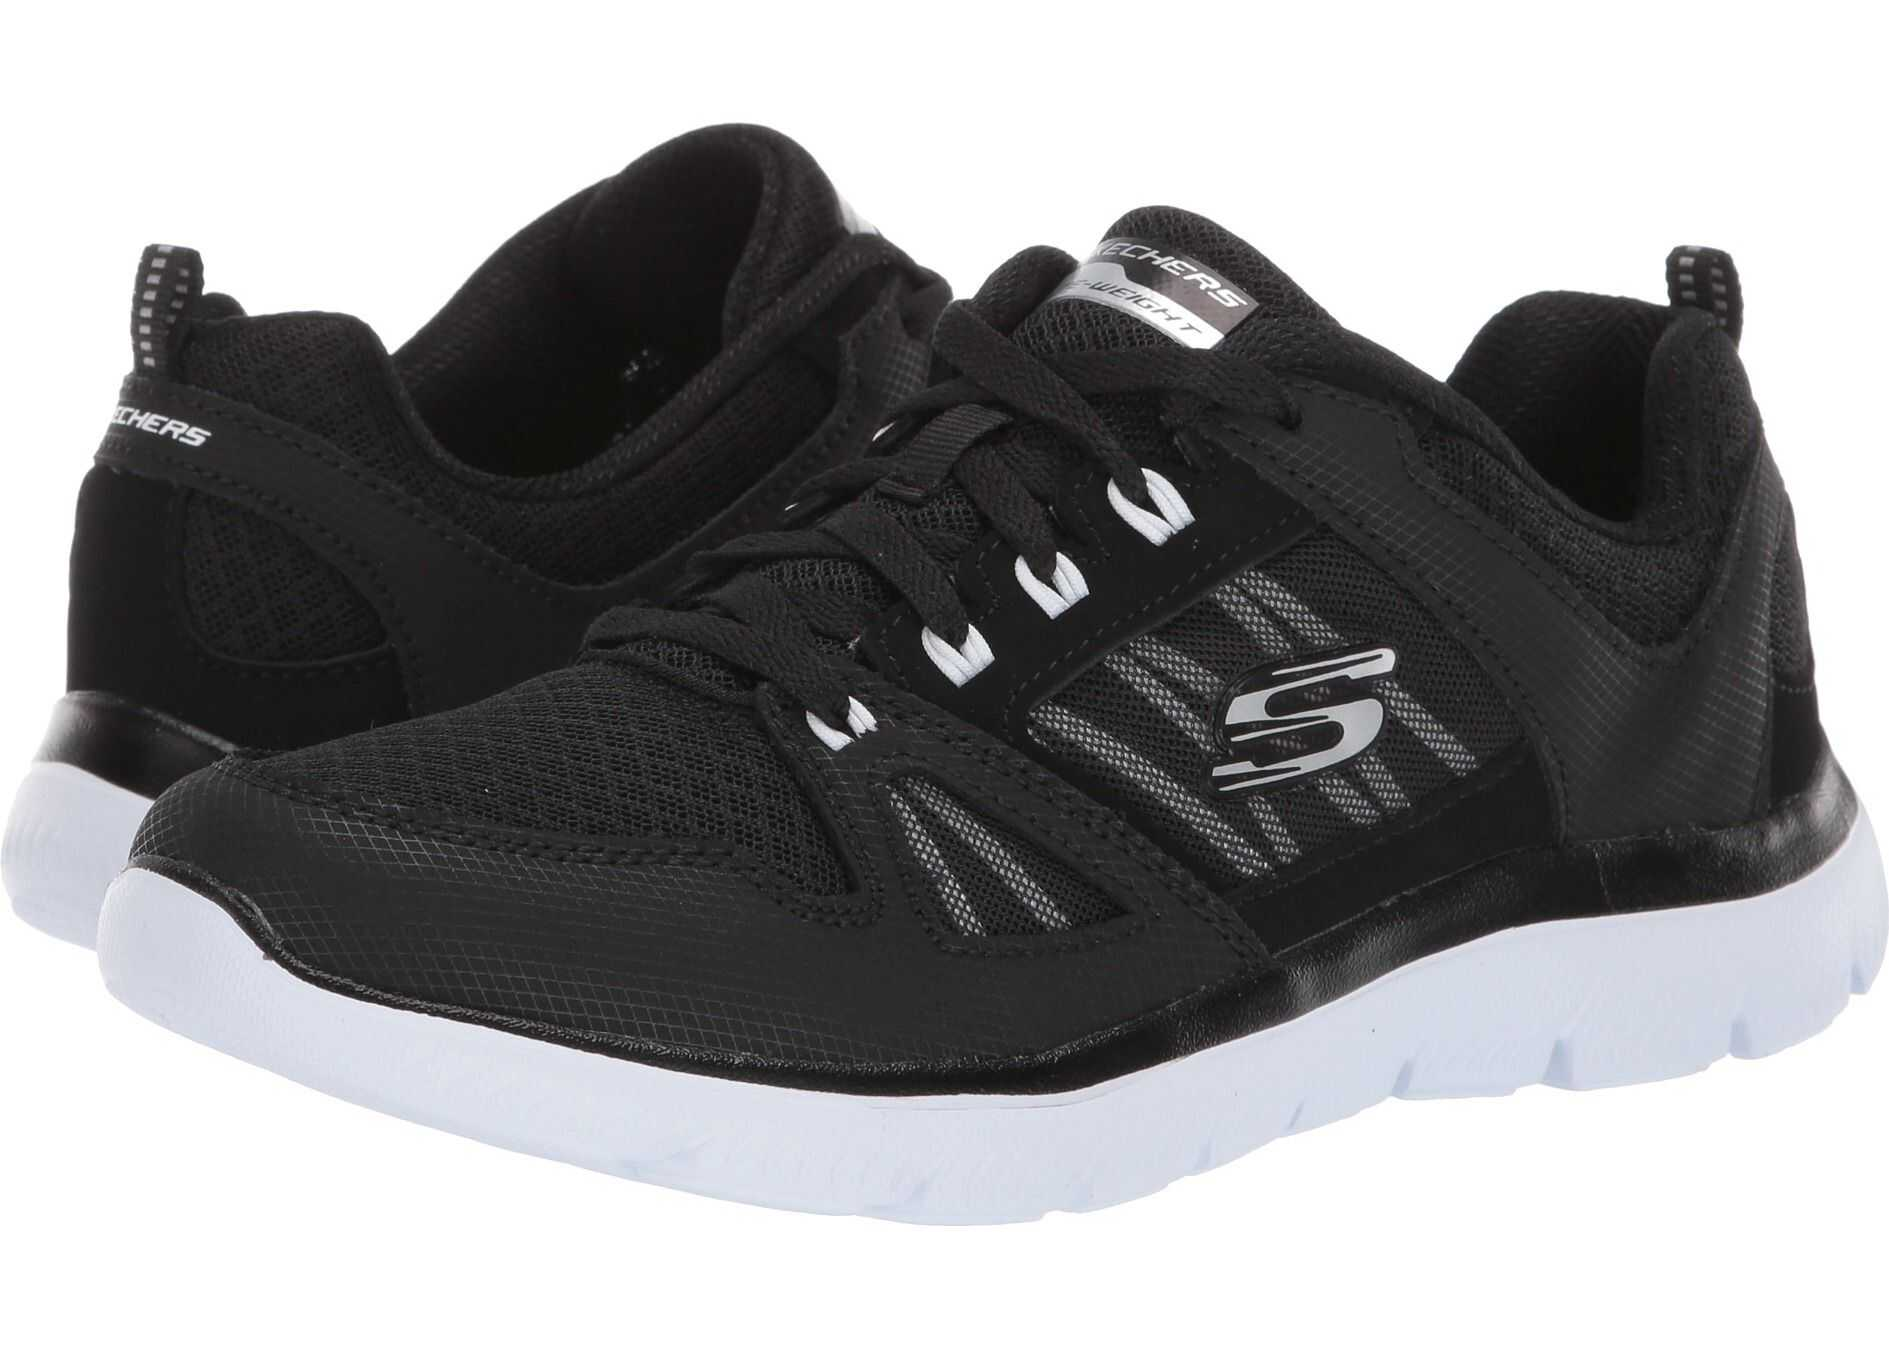 SKECHERS Summit - New World Black/White